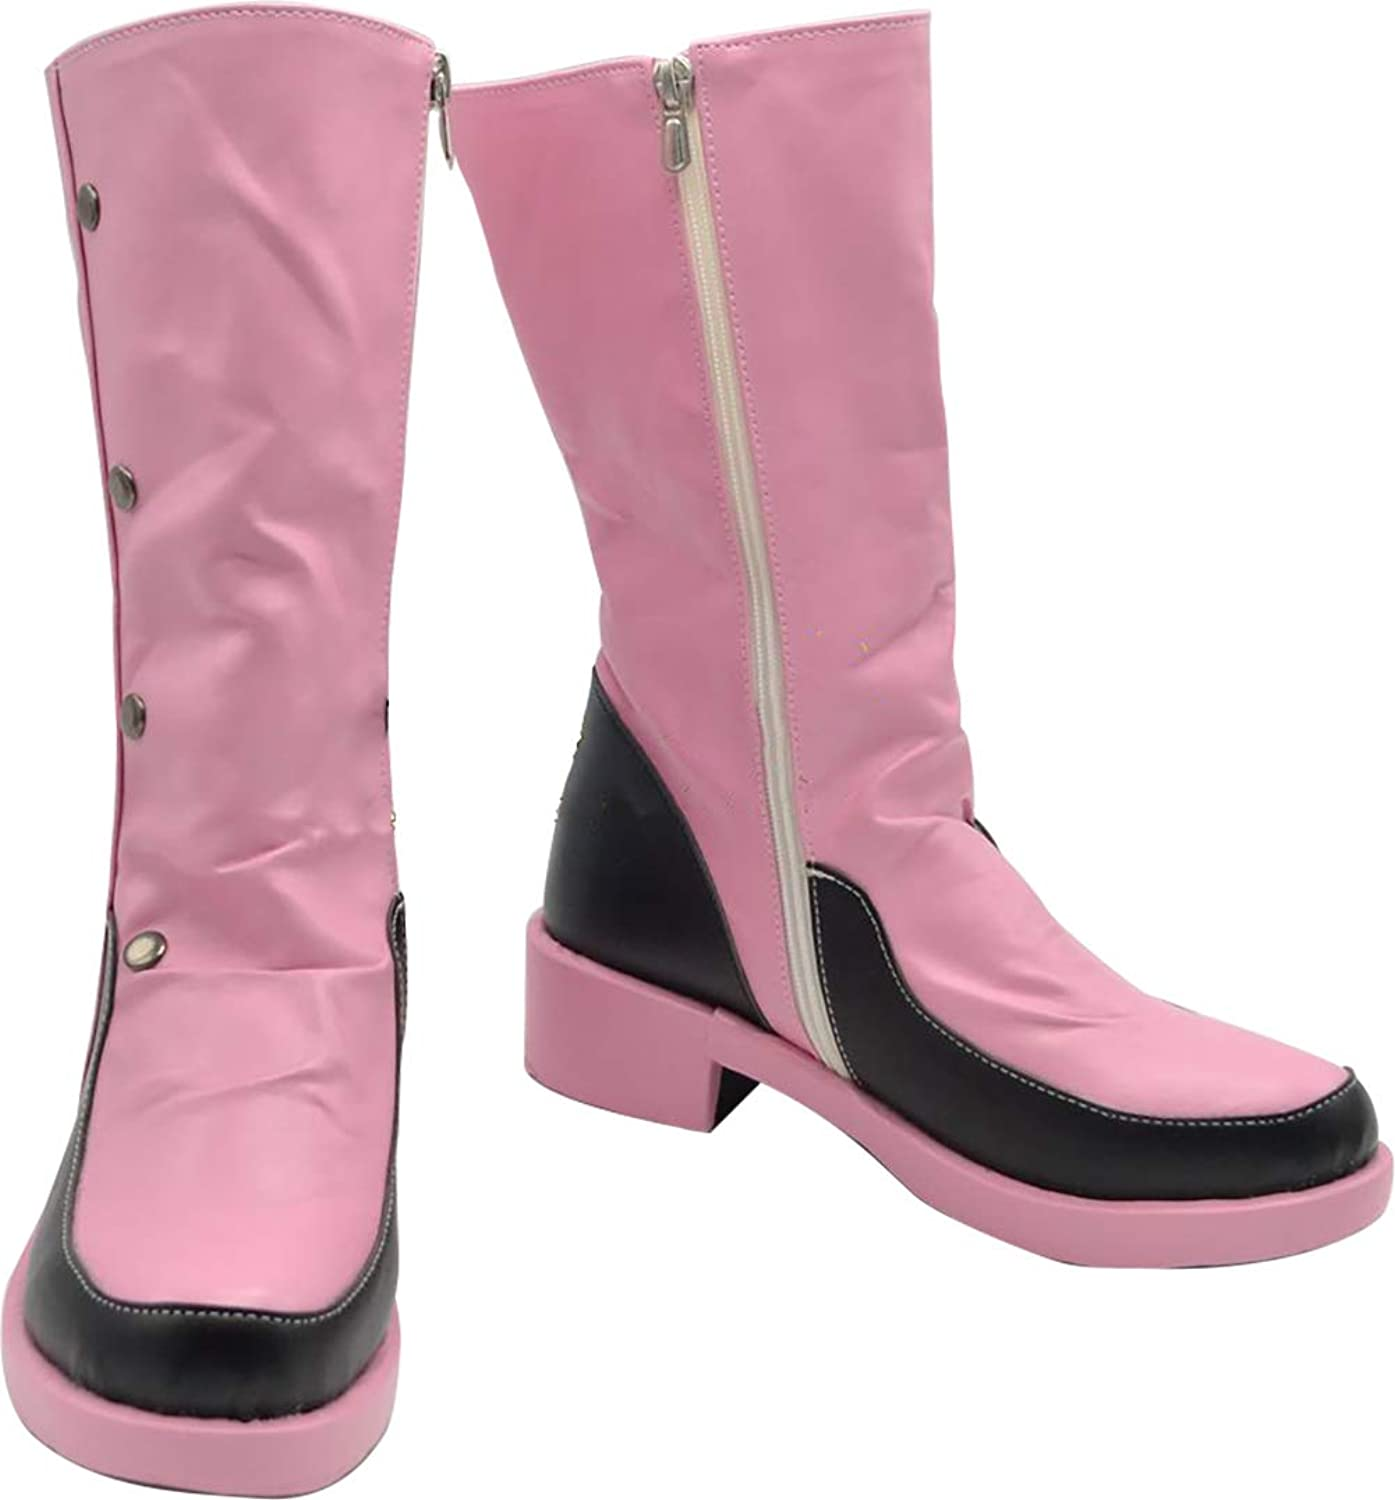 GSFDHDJS Cosplay Boots shoes for Cardcaptor Sakura Kinomoto Sakura Middle Boots